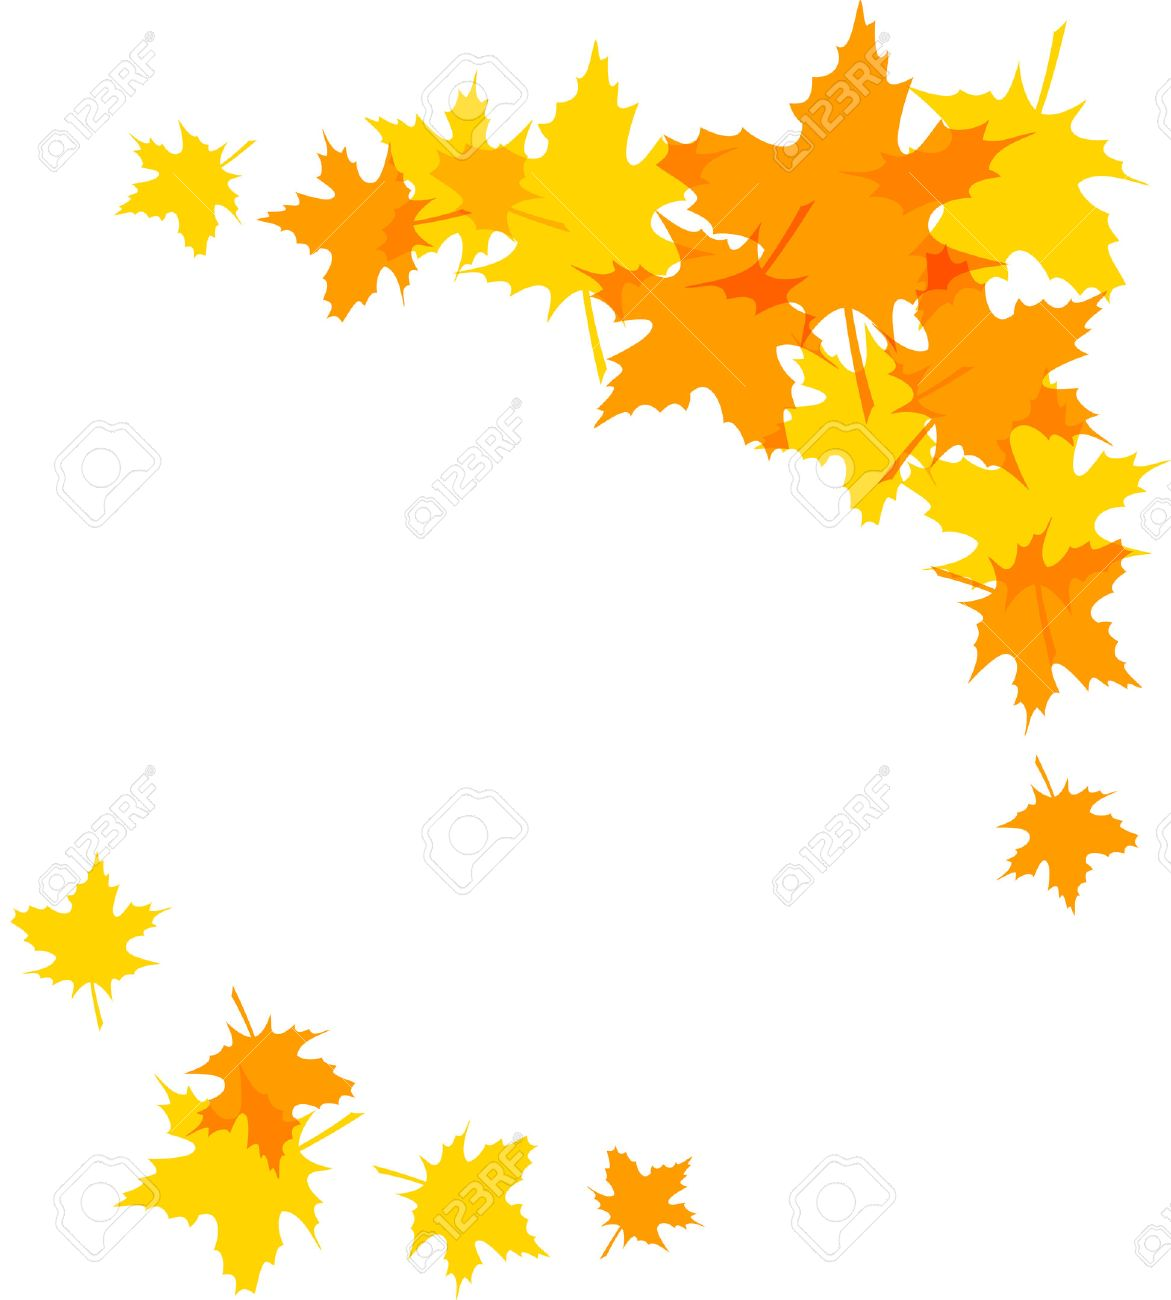 1171x1300 Autumn Leaves Decorative Borders Isolated On White. Clip Art